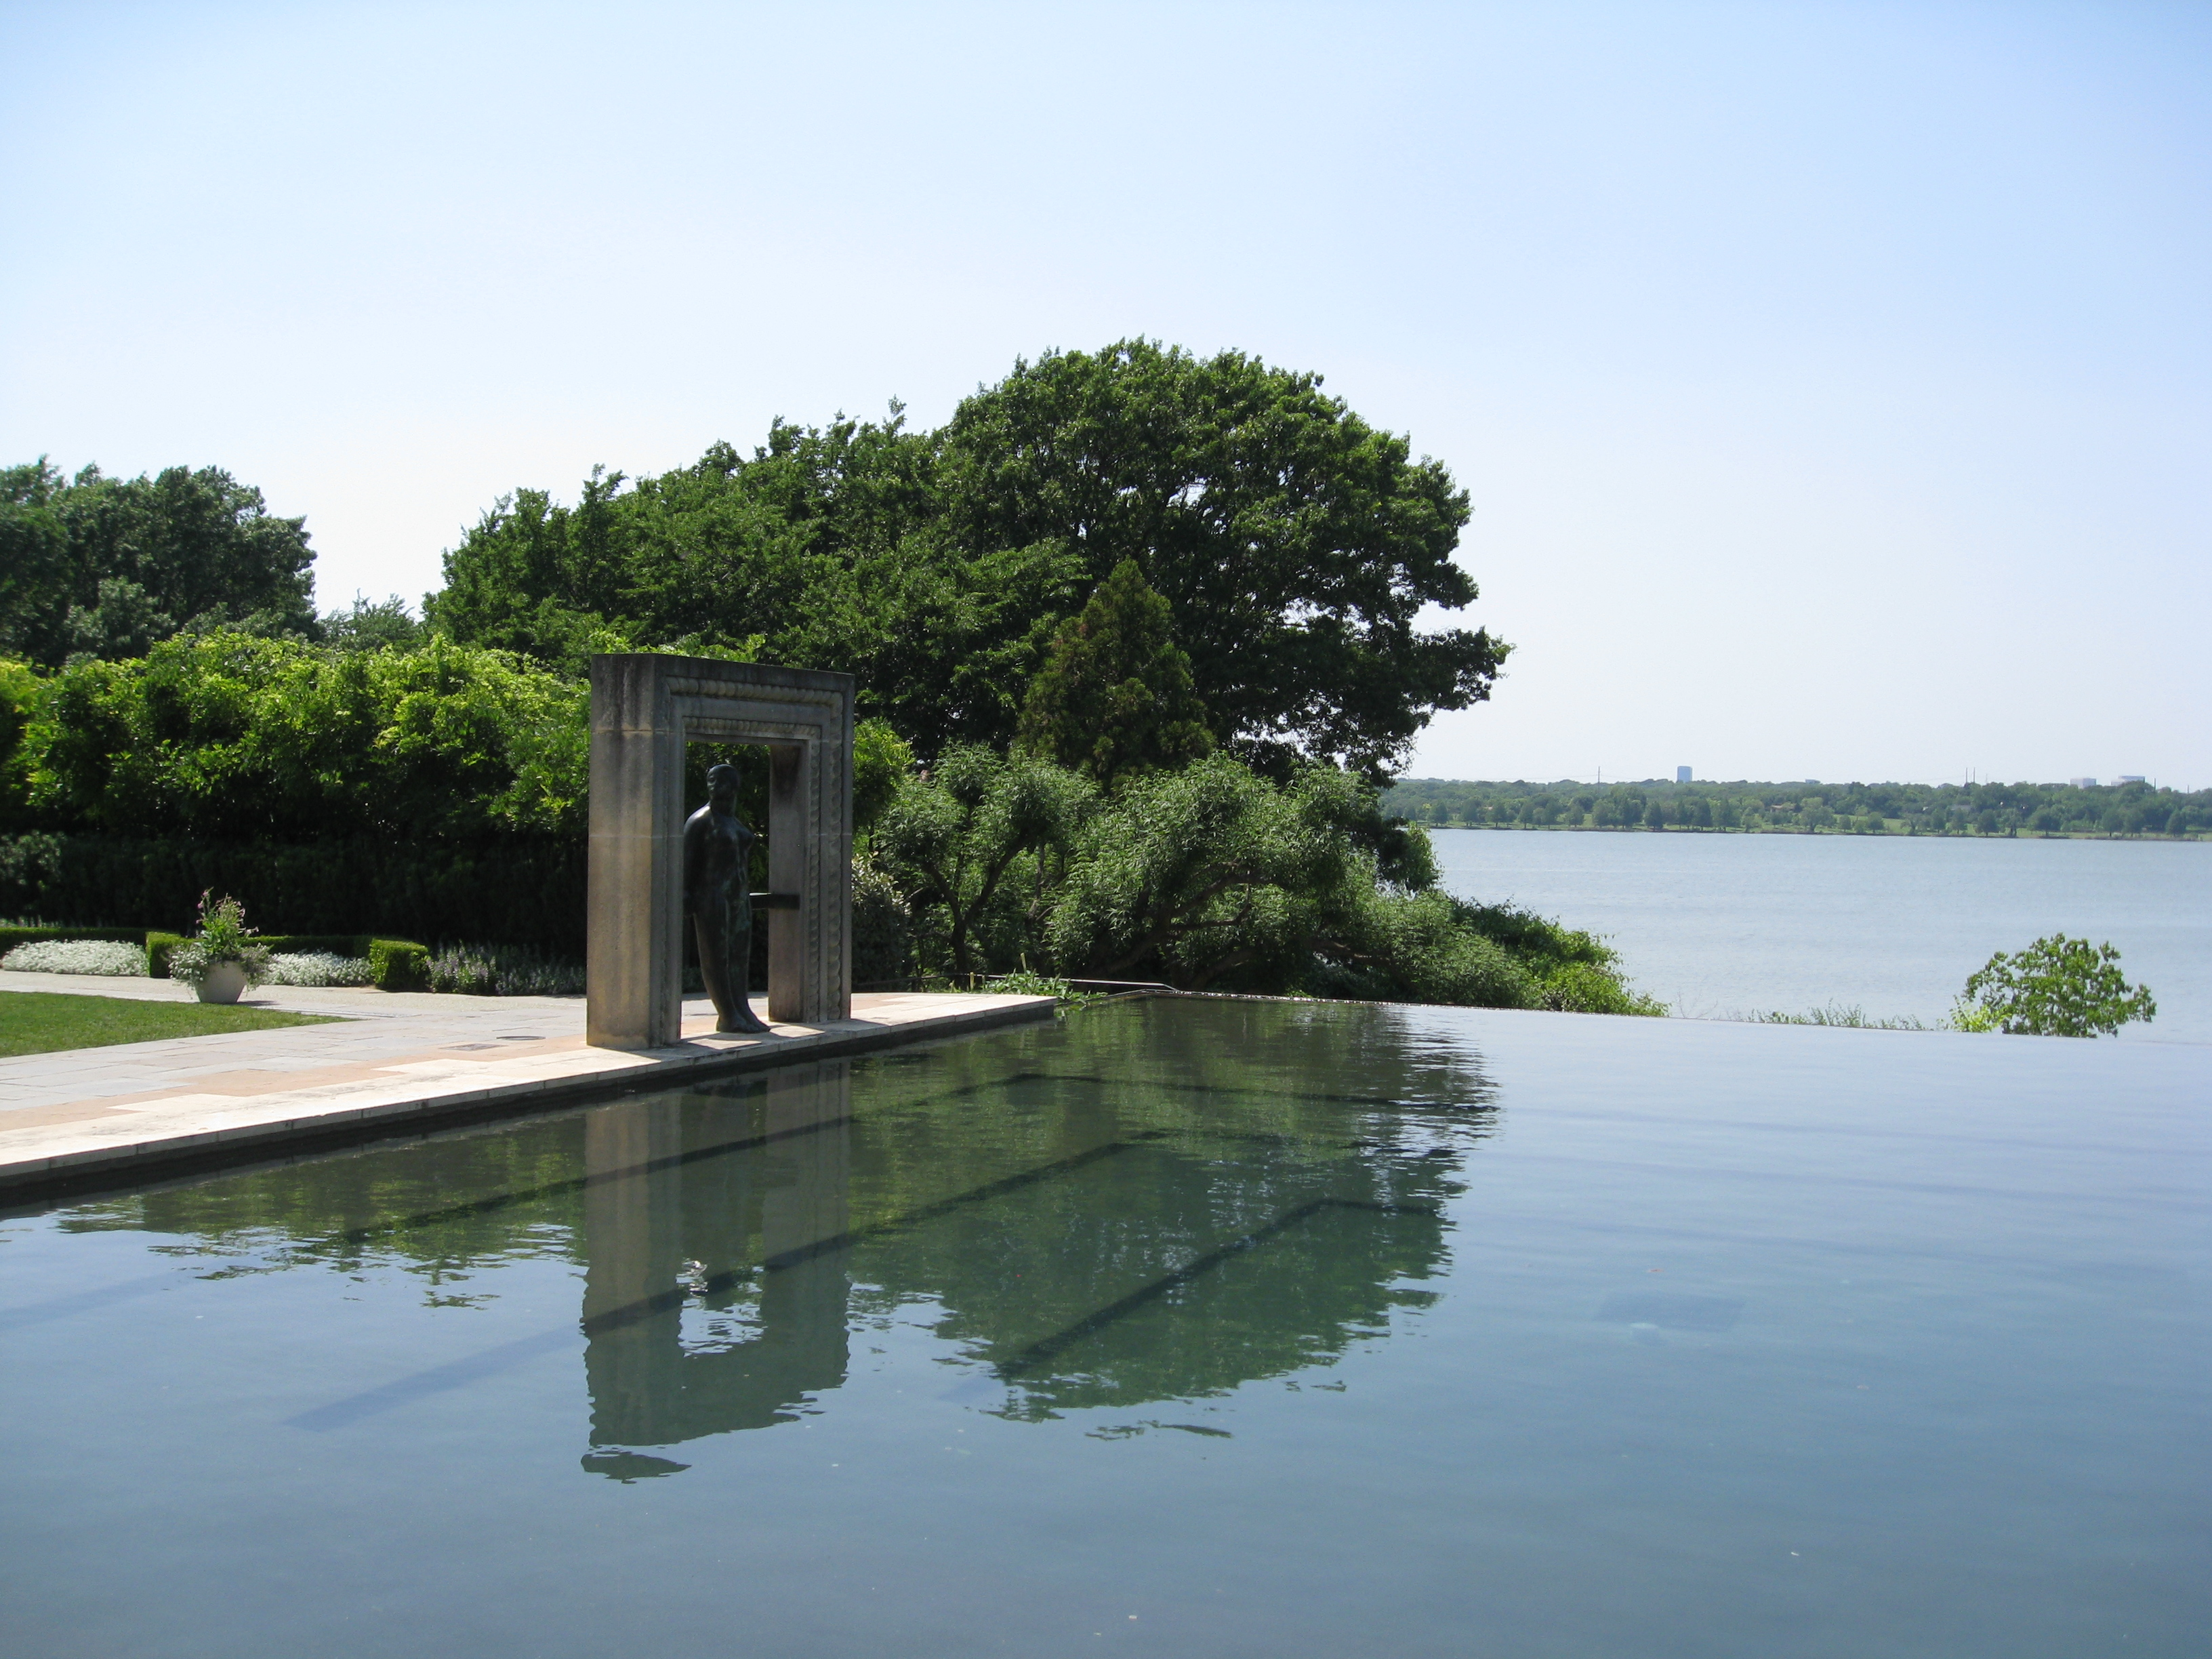 Infinity pool and sculpture garden make the Woman's Garden a peaceful place.